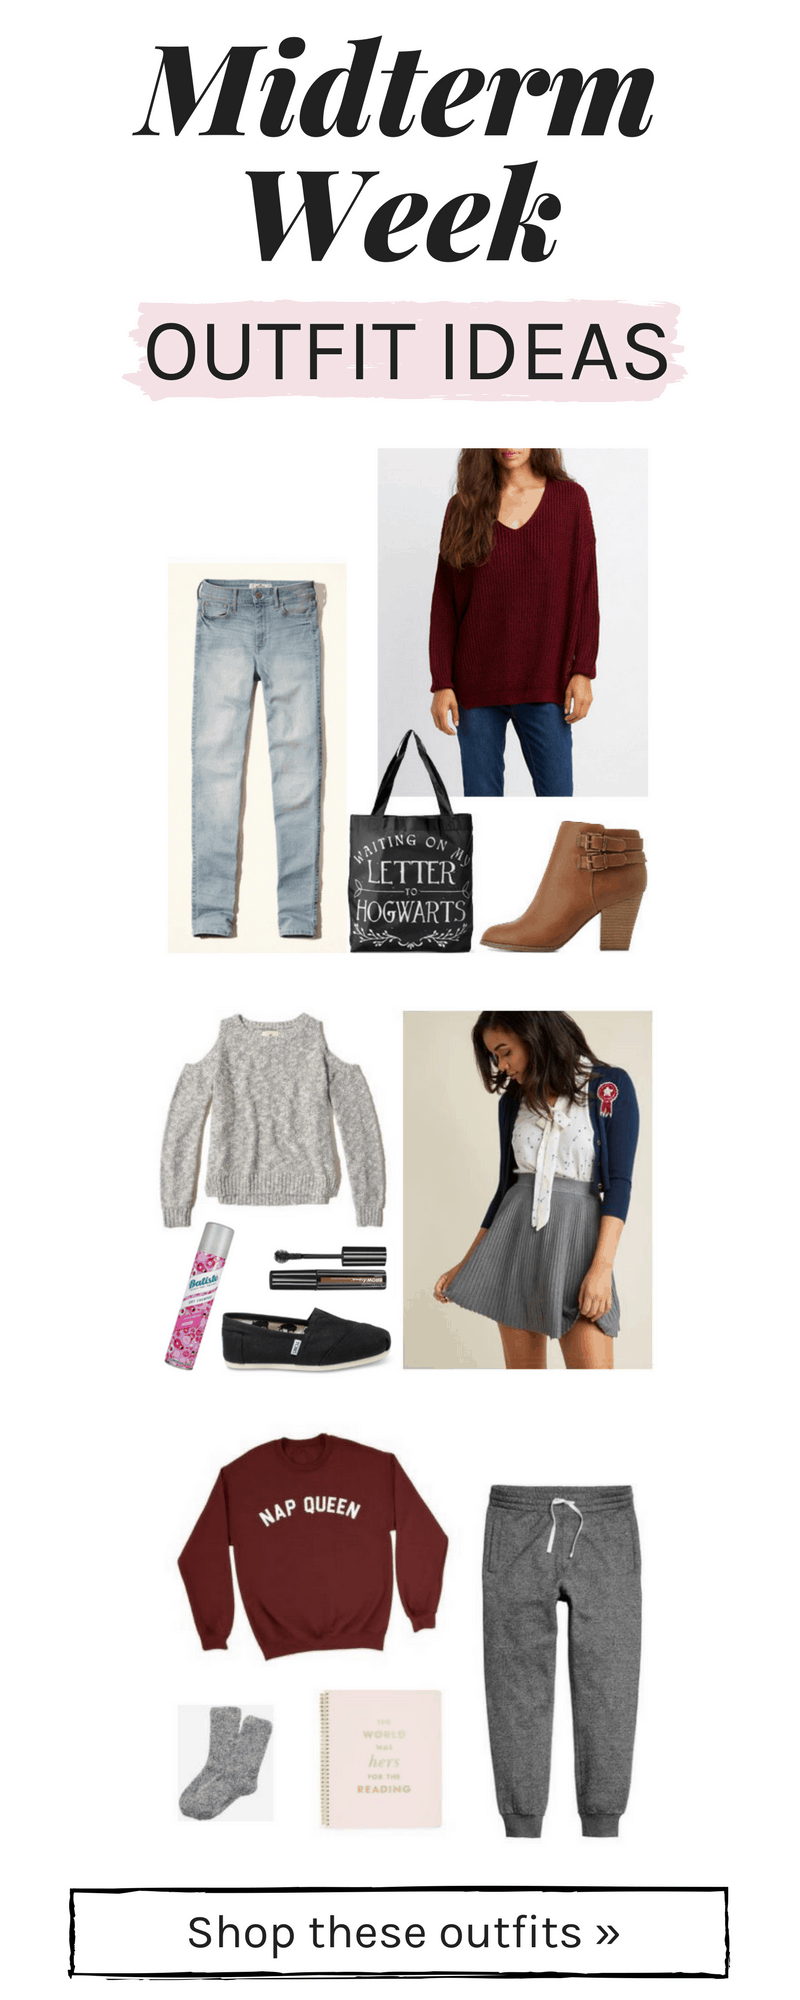 Outfits for Midterms in college - 3 outfit ideas for midterm exam week